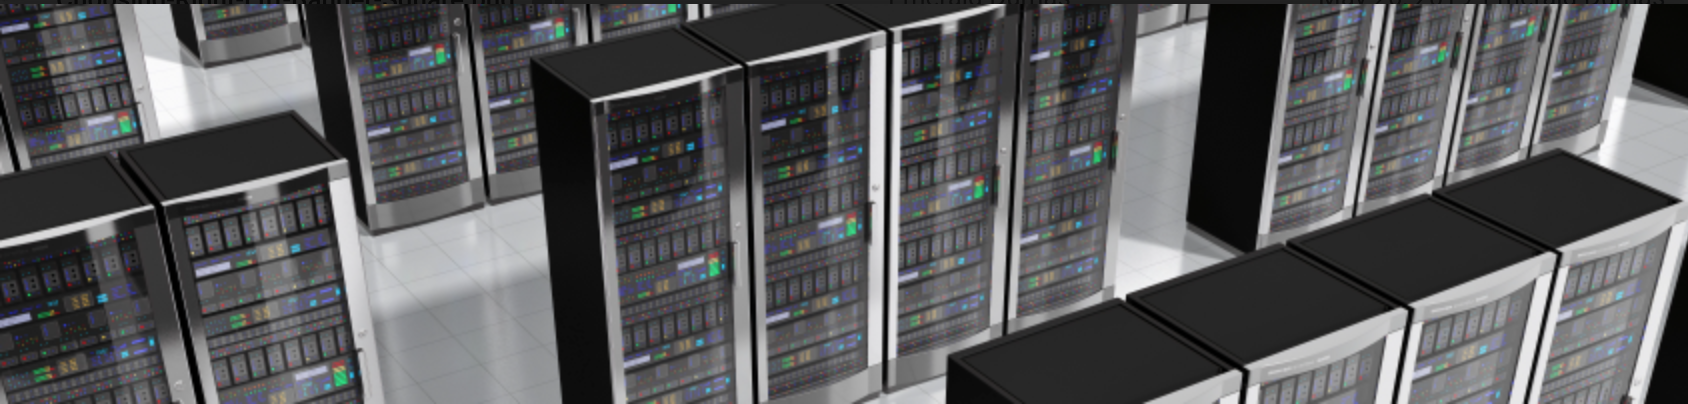 Choosing the Right ServerLIFT Solution for Your Data Center